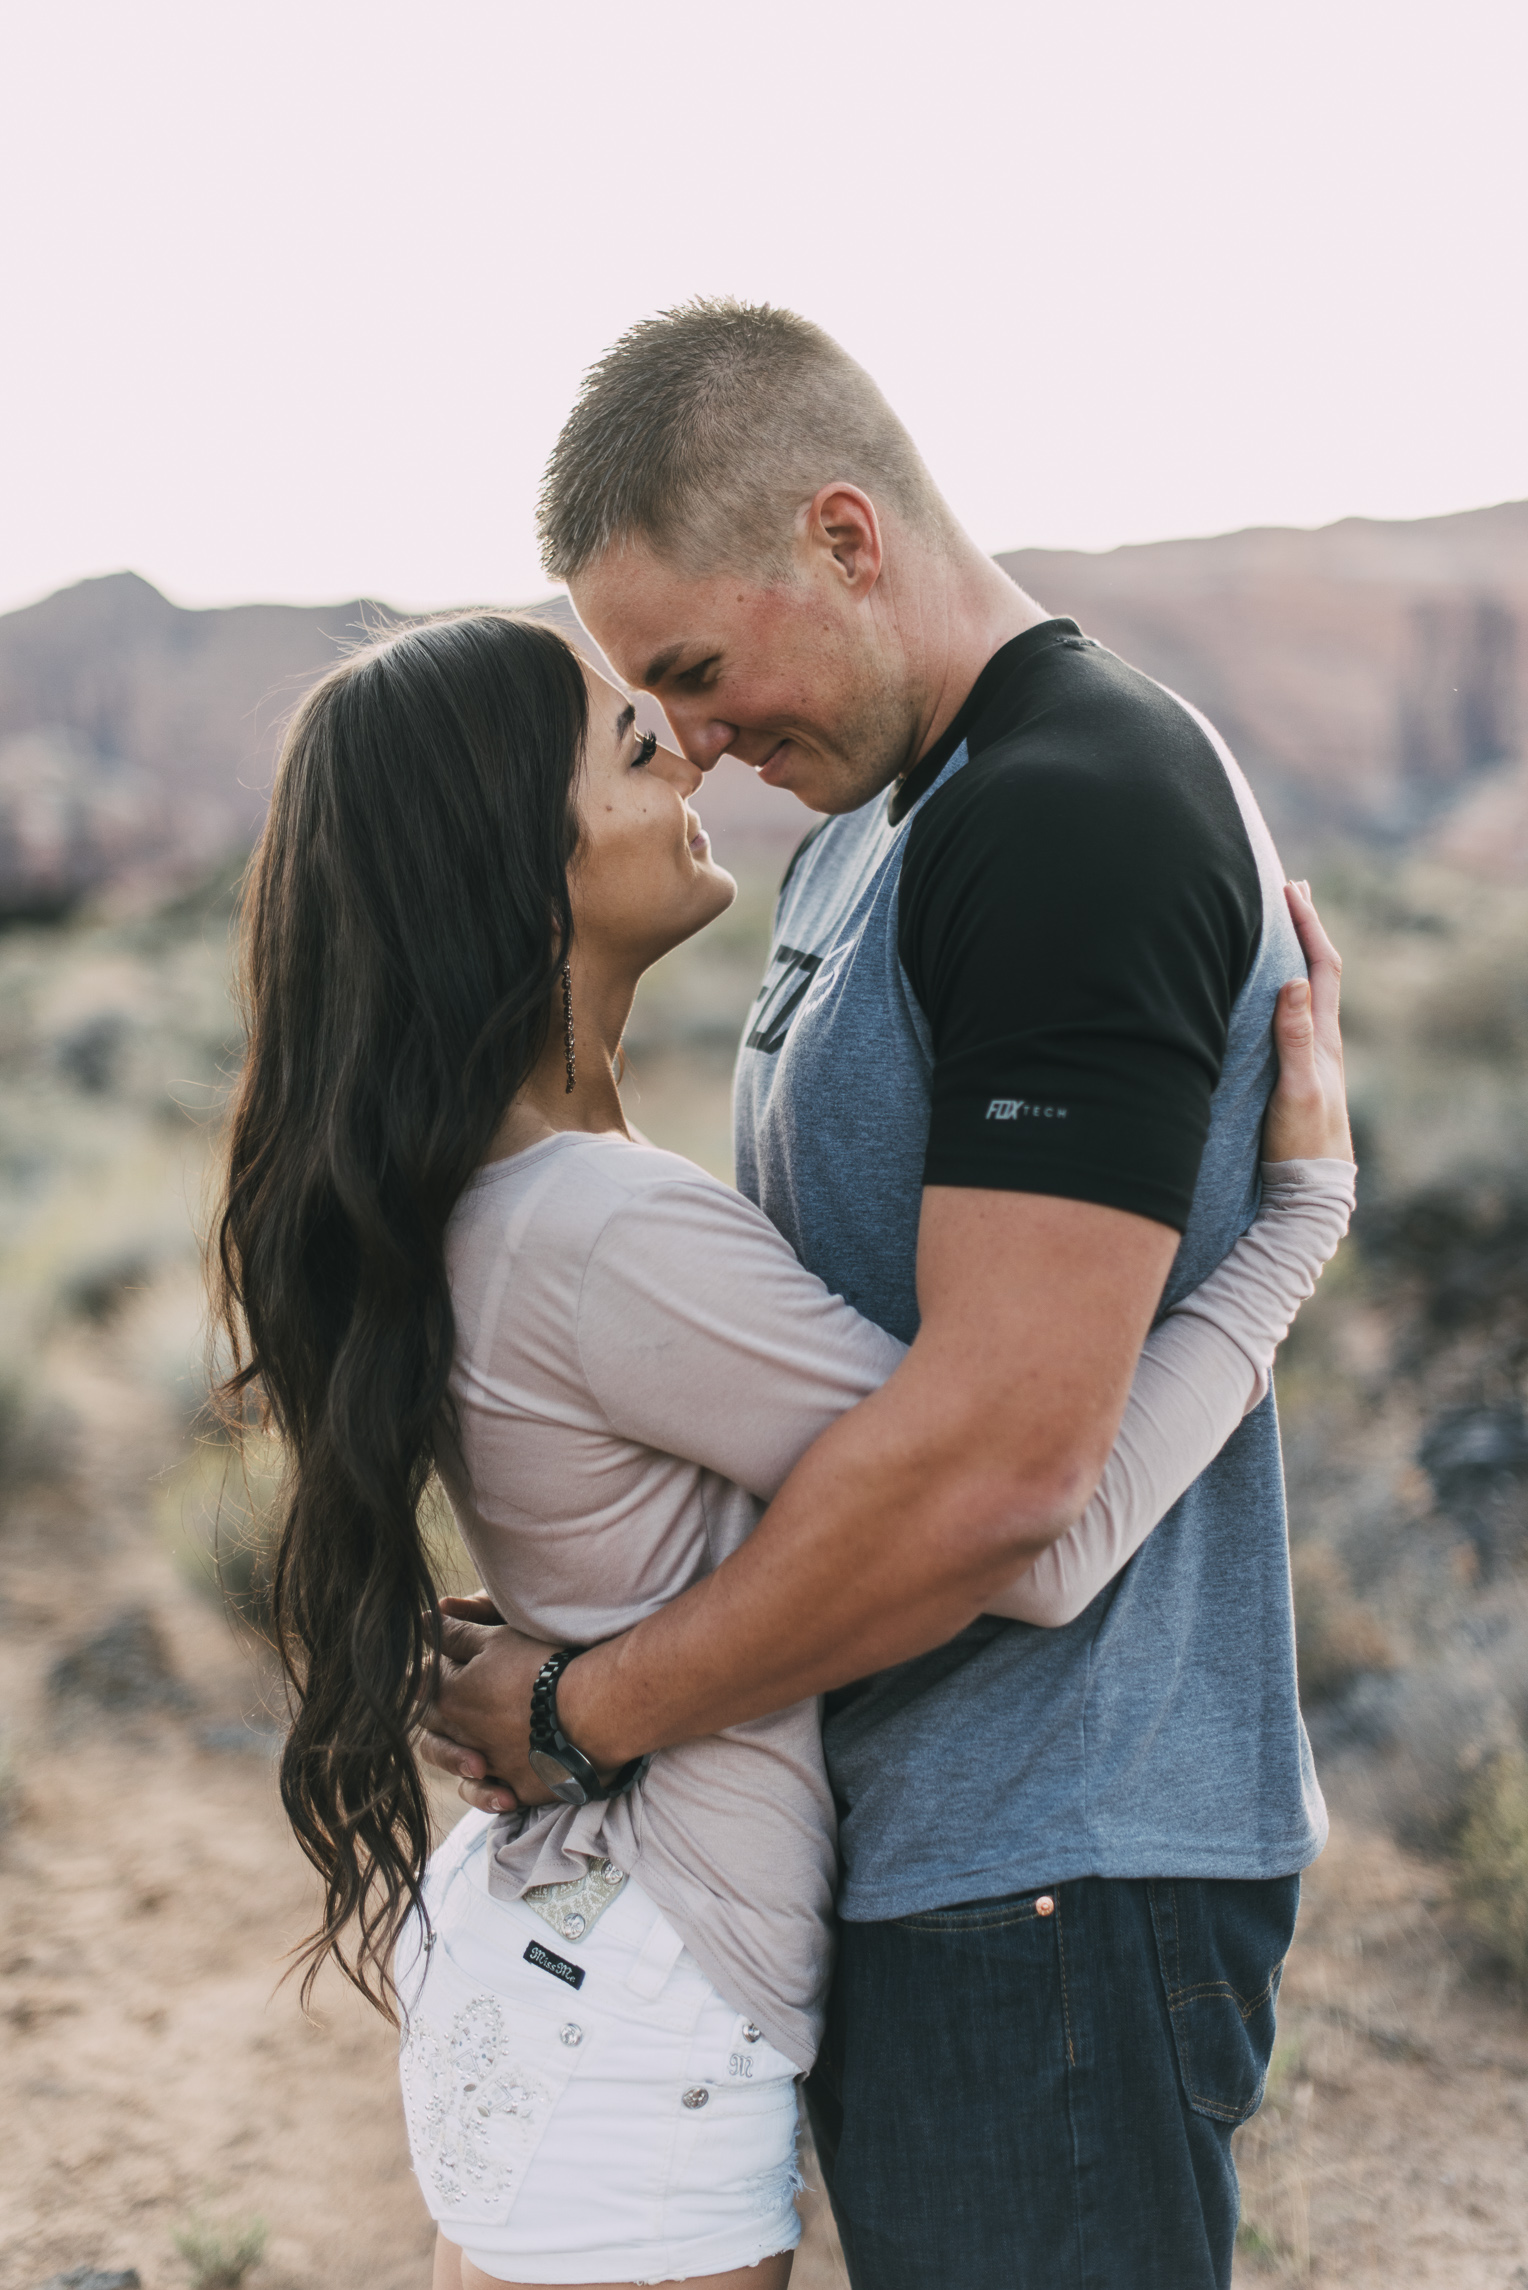 050416KELSEY & RUSTIN ENGAGEMENTS - ST. GEORGE LAS VEGAS PHOTOGRAPHER - DEBI RAE PHOTOGRAPHY-60.jpg